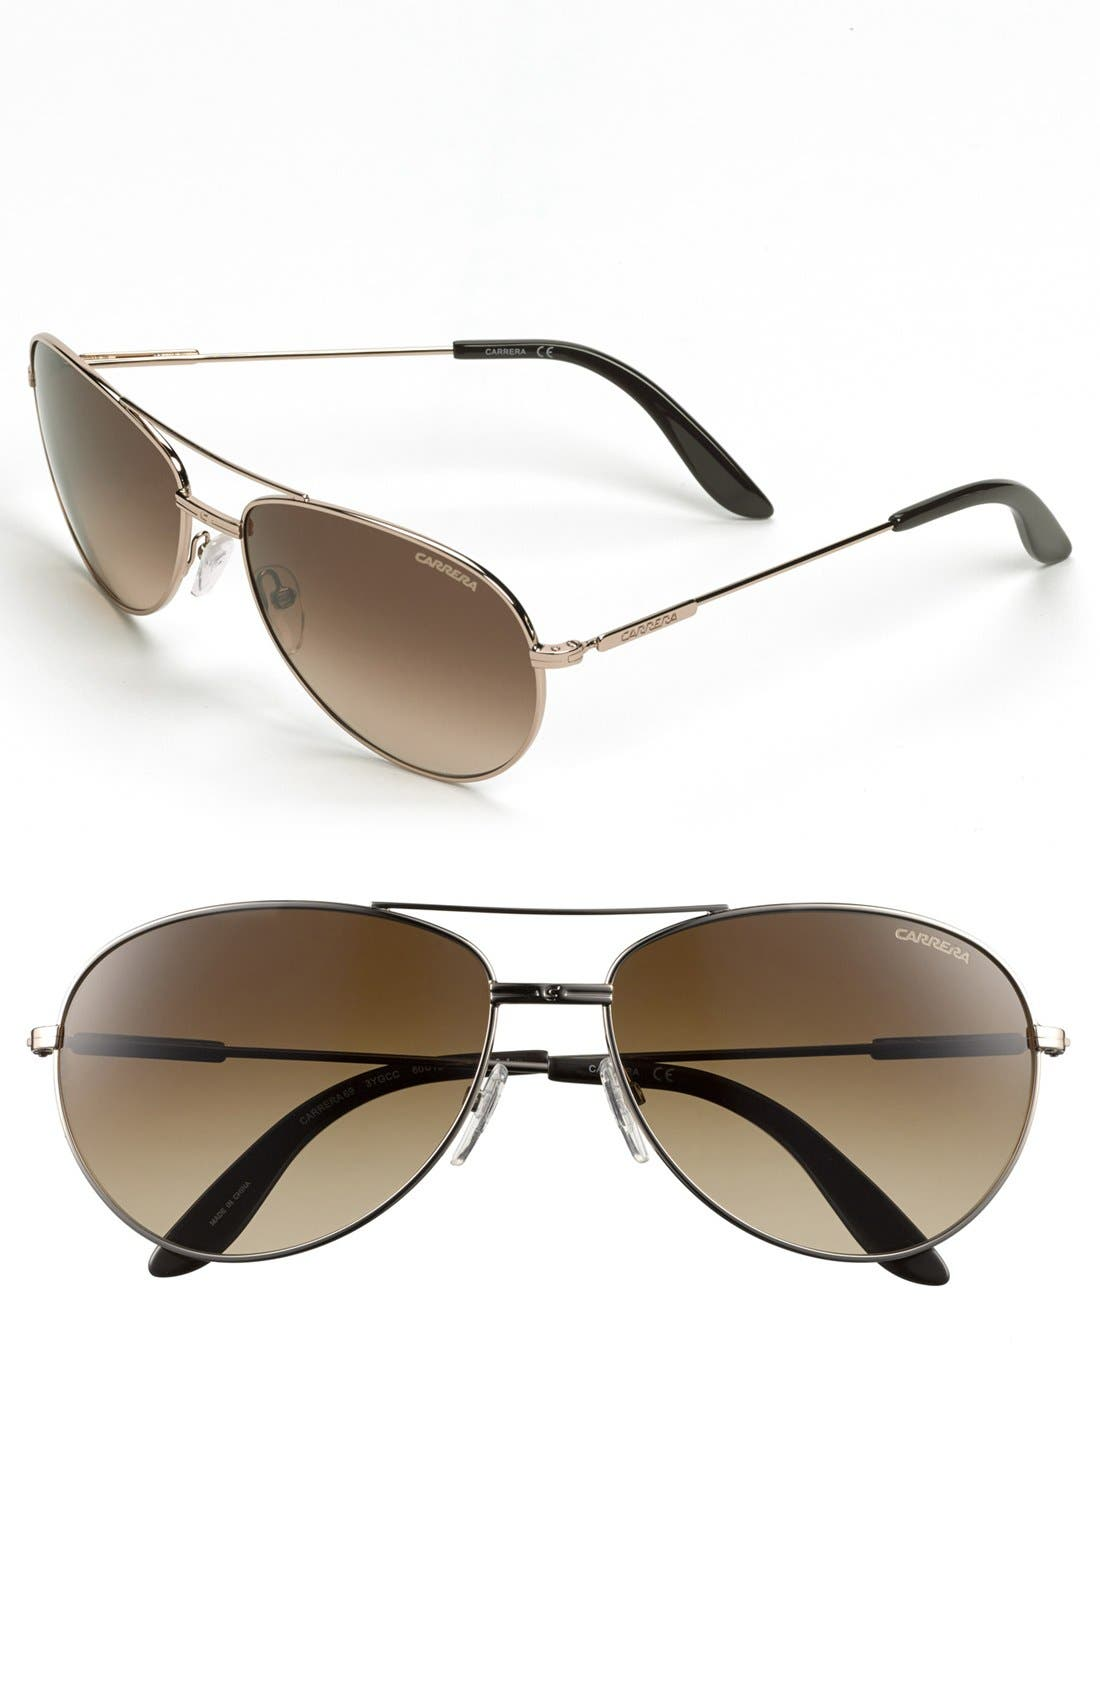 Alternate Image 1 Selected - Carrera Eyewear '69/S' 60mm Sunglasses